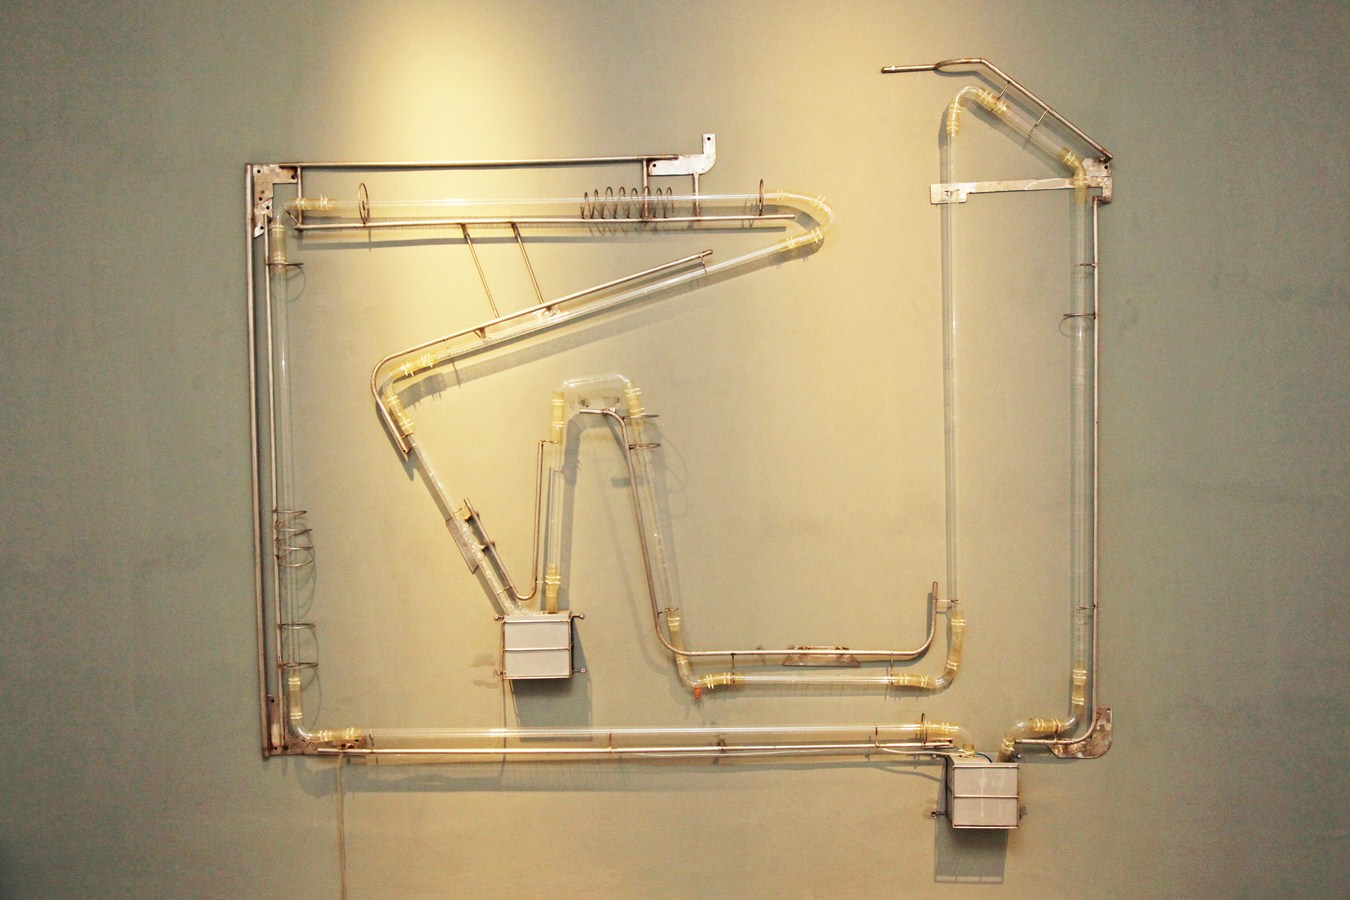 Susanta Mandal | How long does it take to complete a circle? | Glass, steel, air pump, soap solution & timer | Variable | 2011